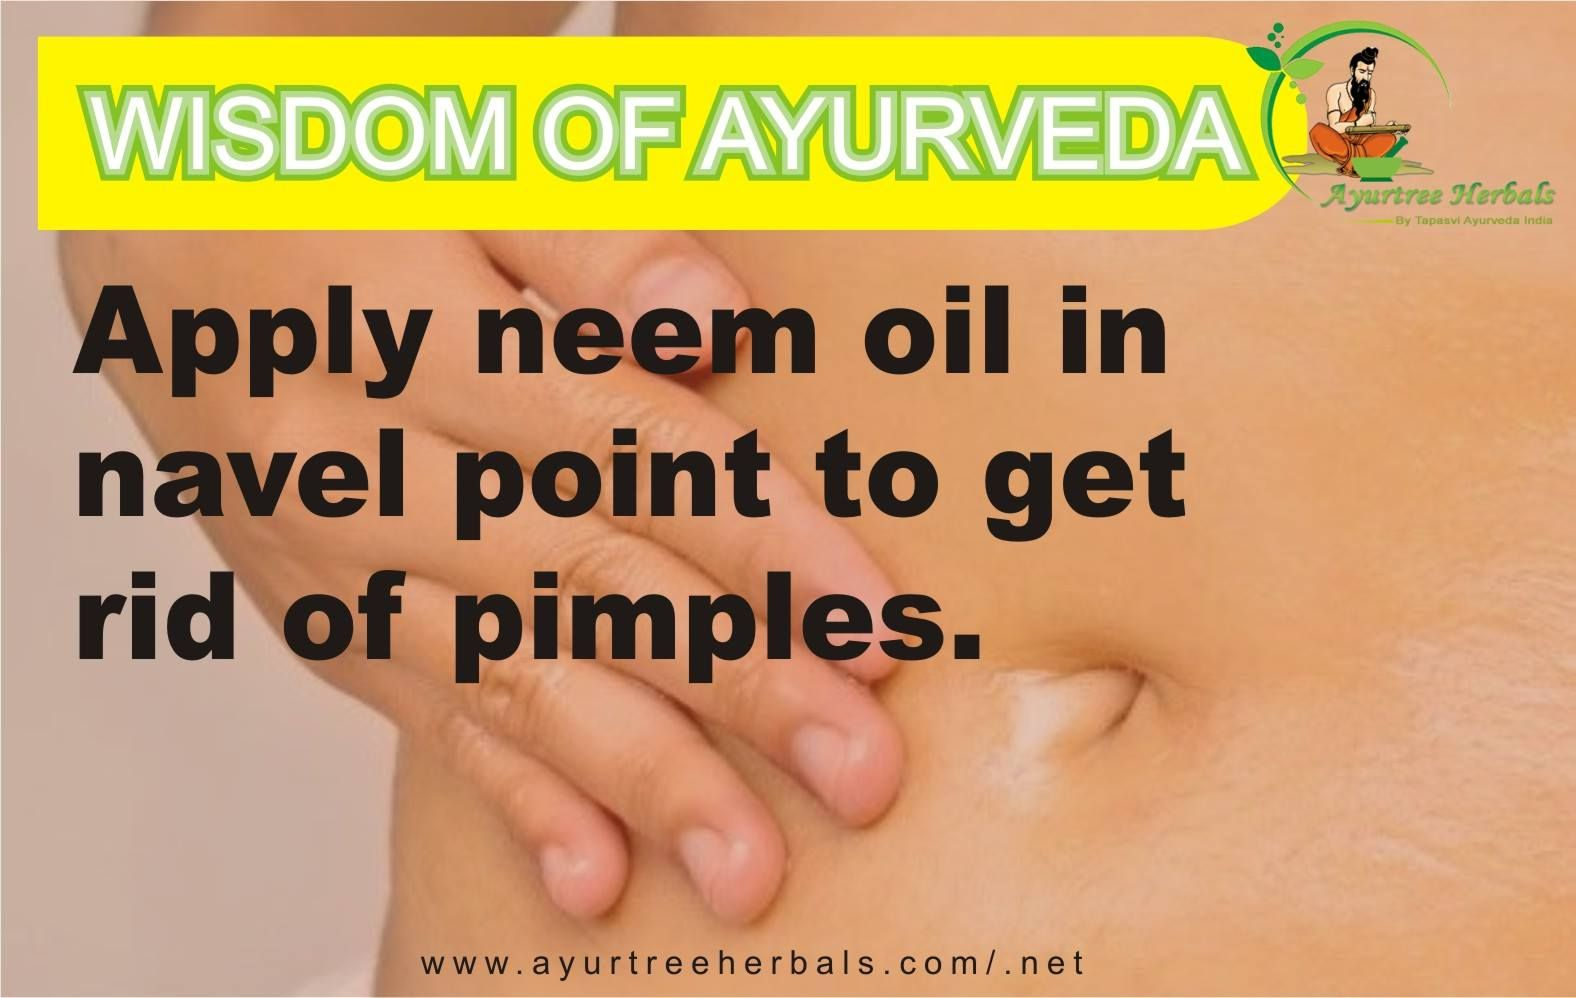 Health pimples skin care How to get rid of pimples